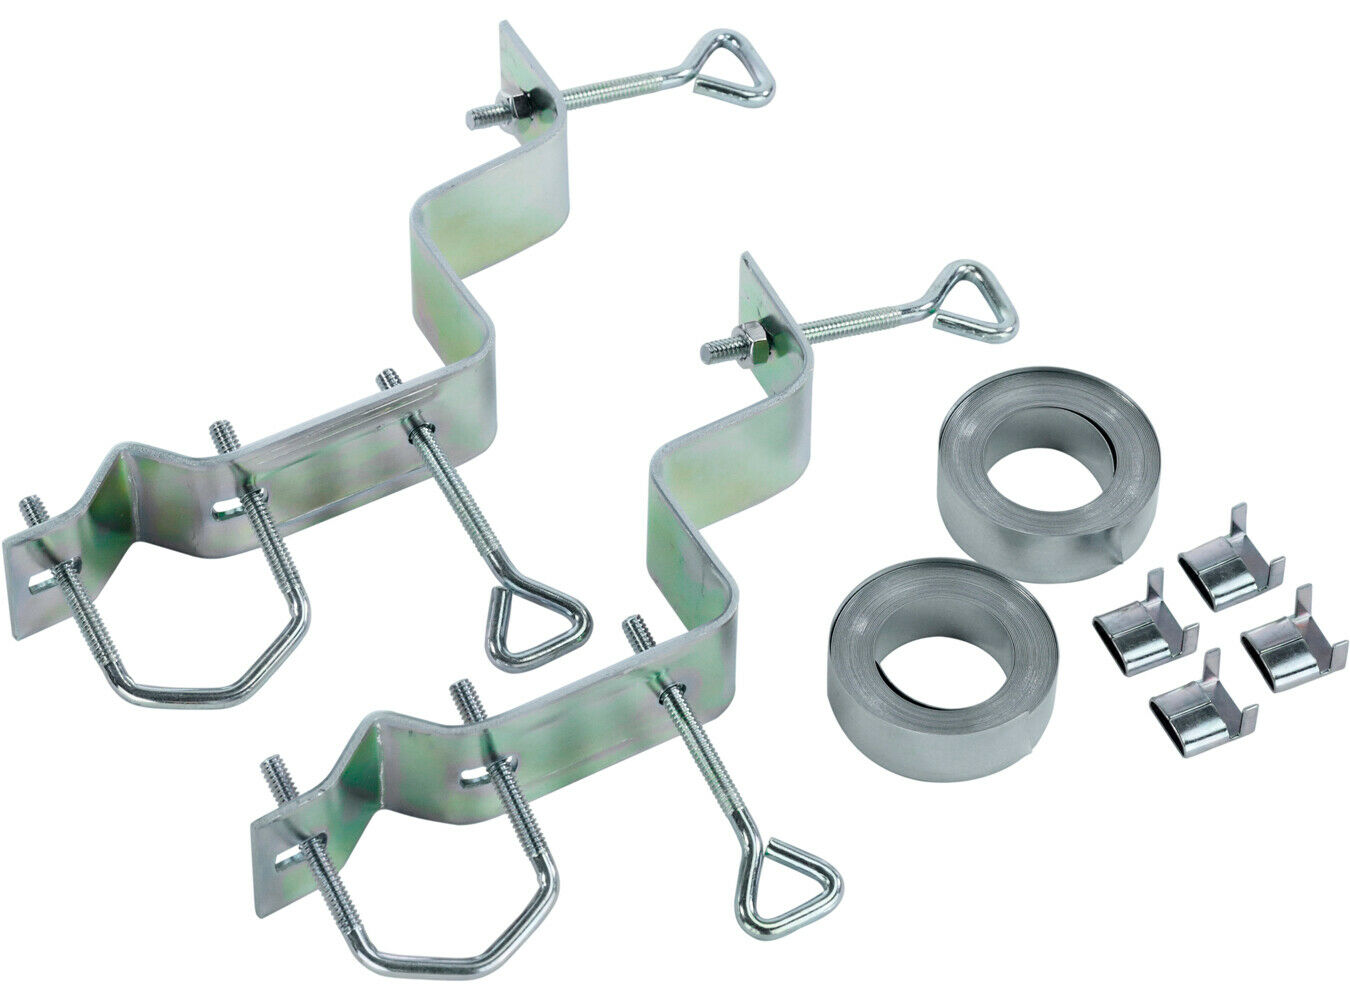 Channel Master TV Antenna Chimney Mount 12 Foot Steel Straps Brackets CM-3080. Available Now for 19.00